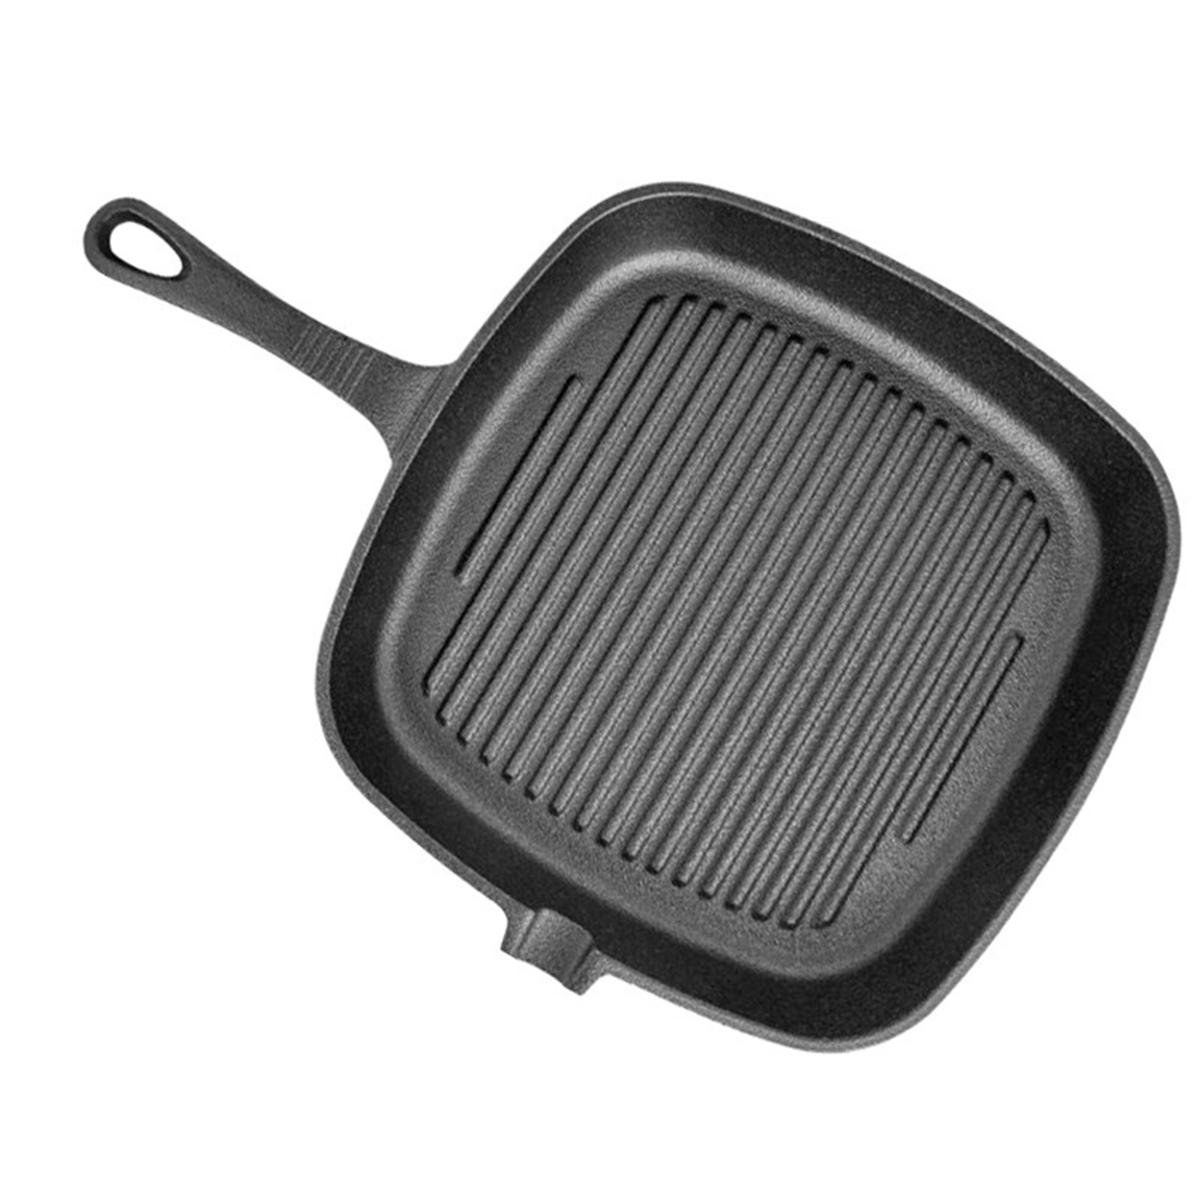 Non-Stick Cast Iron Grill Frying Pan 24X24cm Multifunction Griddle BBQ Cooking Baking Home Kitchen Cooker Tool Cookware Black